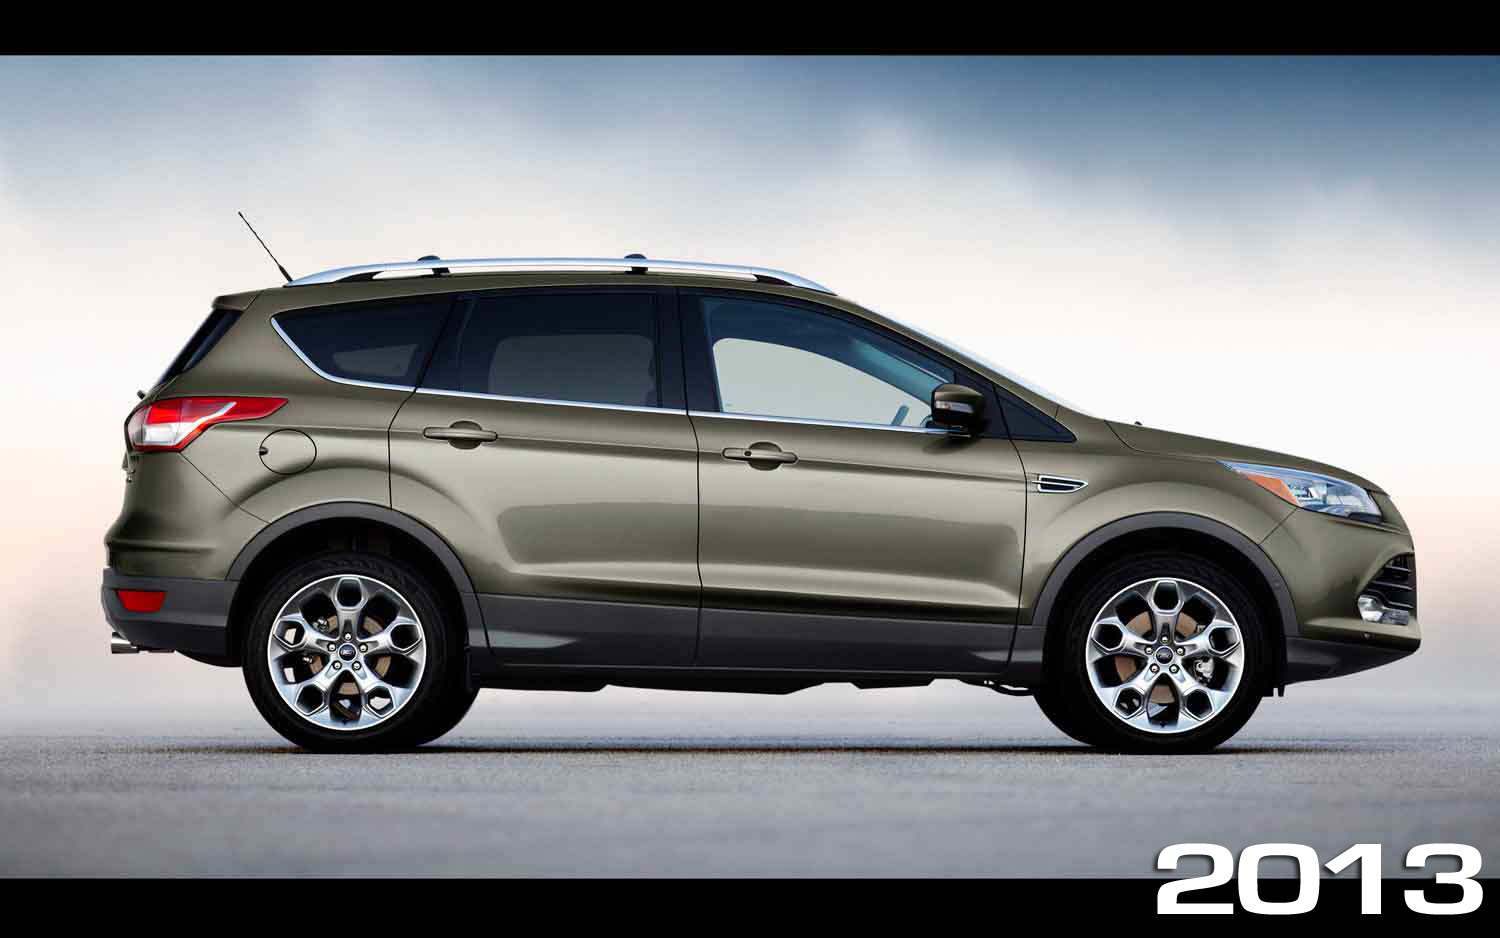 car images 2013 ford escape. Black Bedroom Furniture Sets. Home Design Ideas